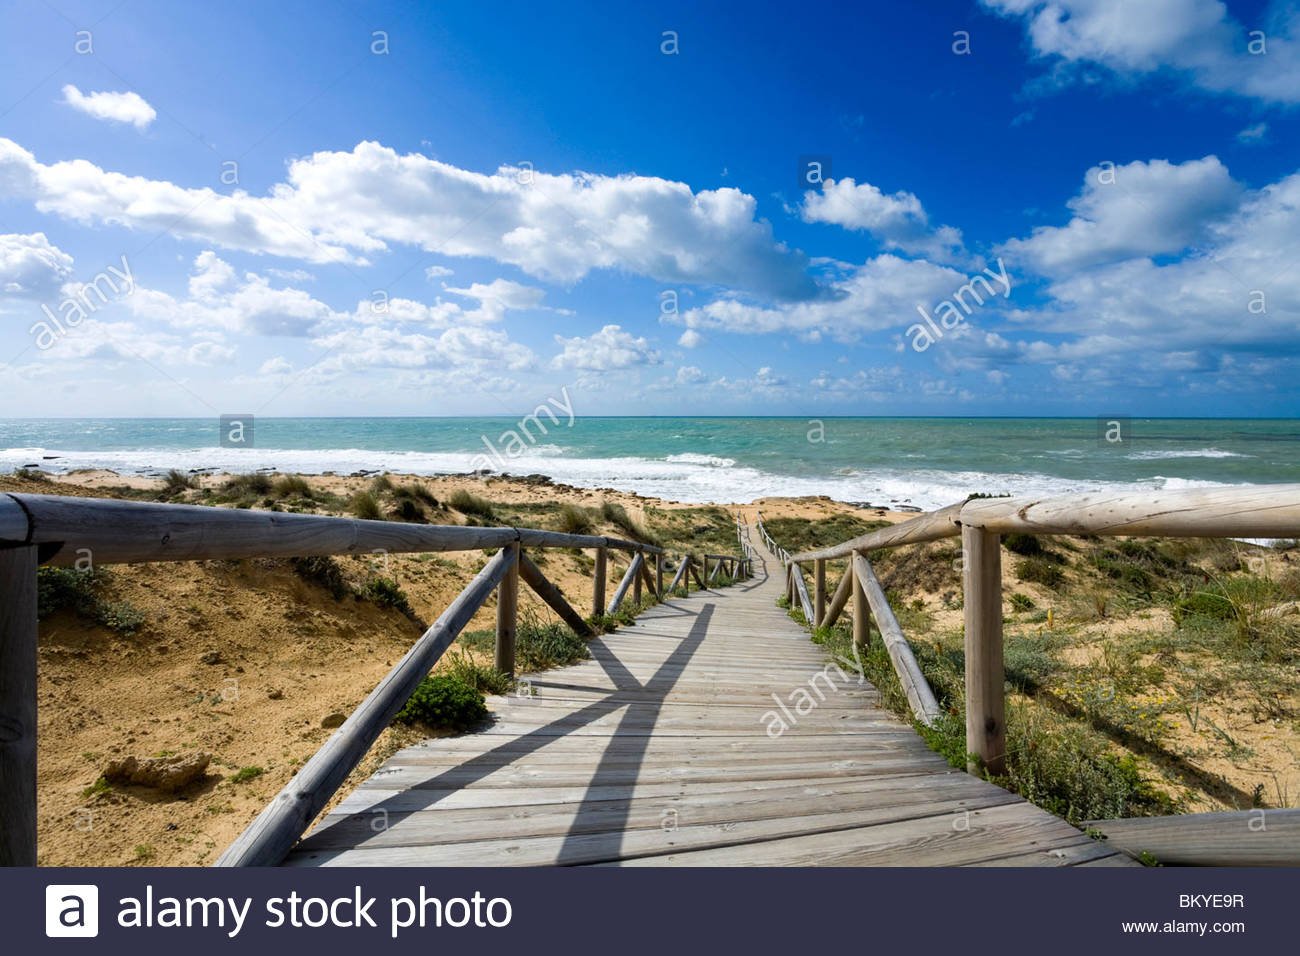 Beach at Cabo de Trafalgar, Province Cadiz, Andalucia, Spain - Stock Image